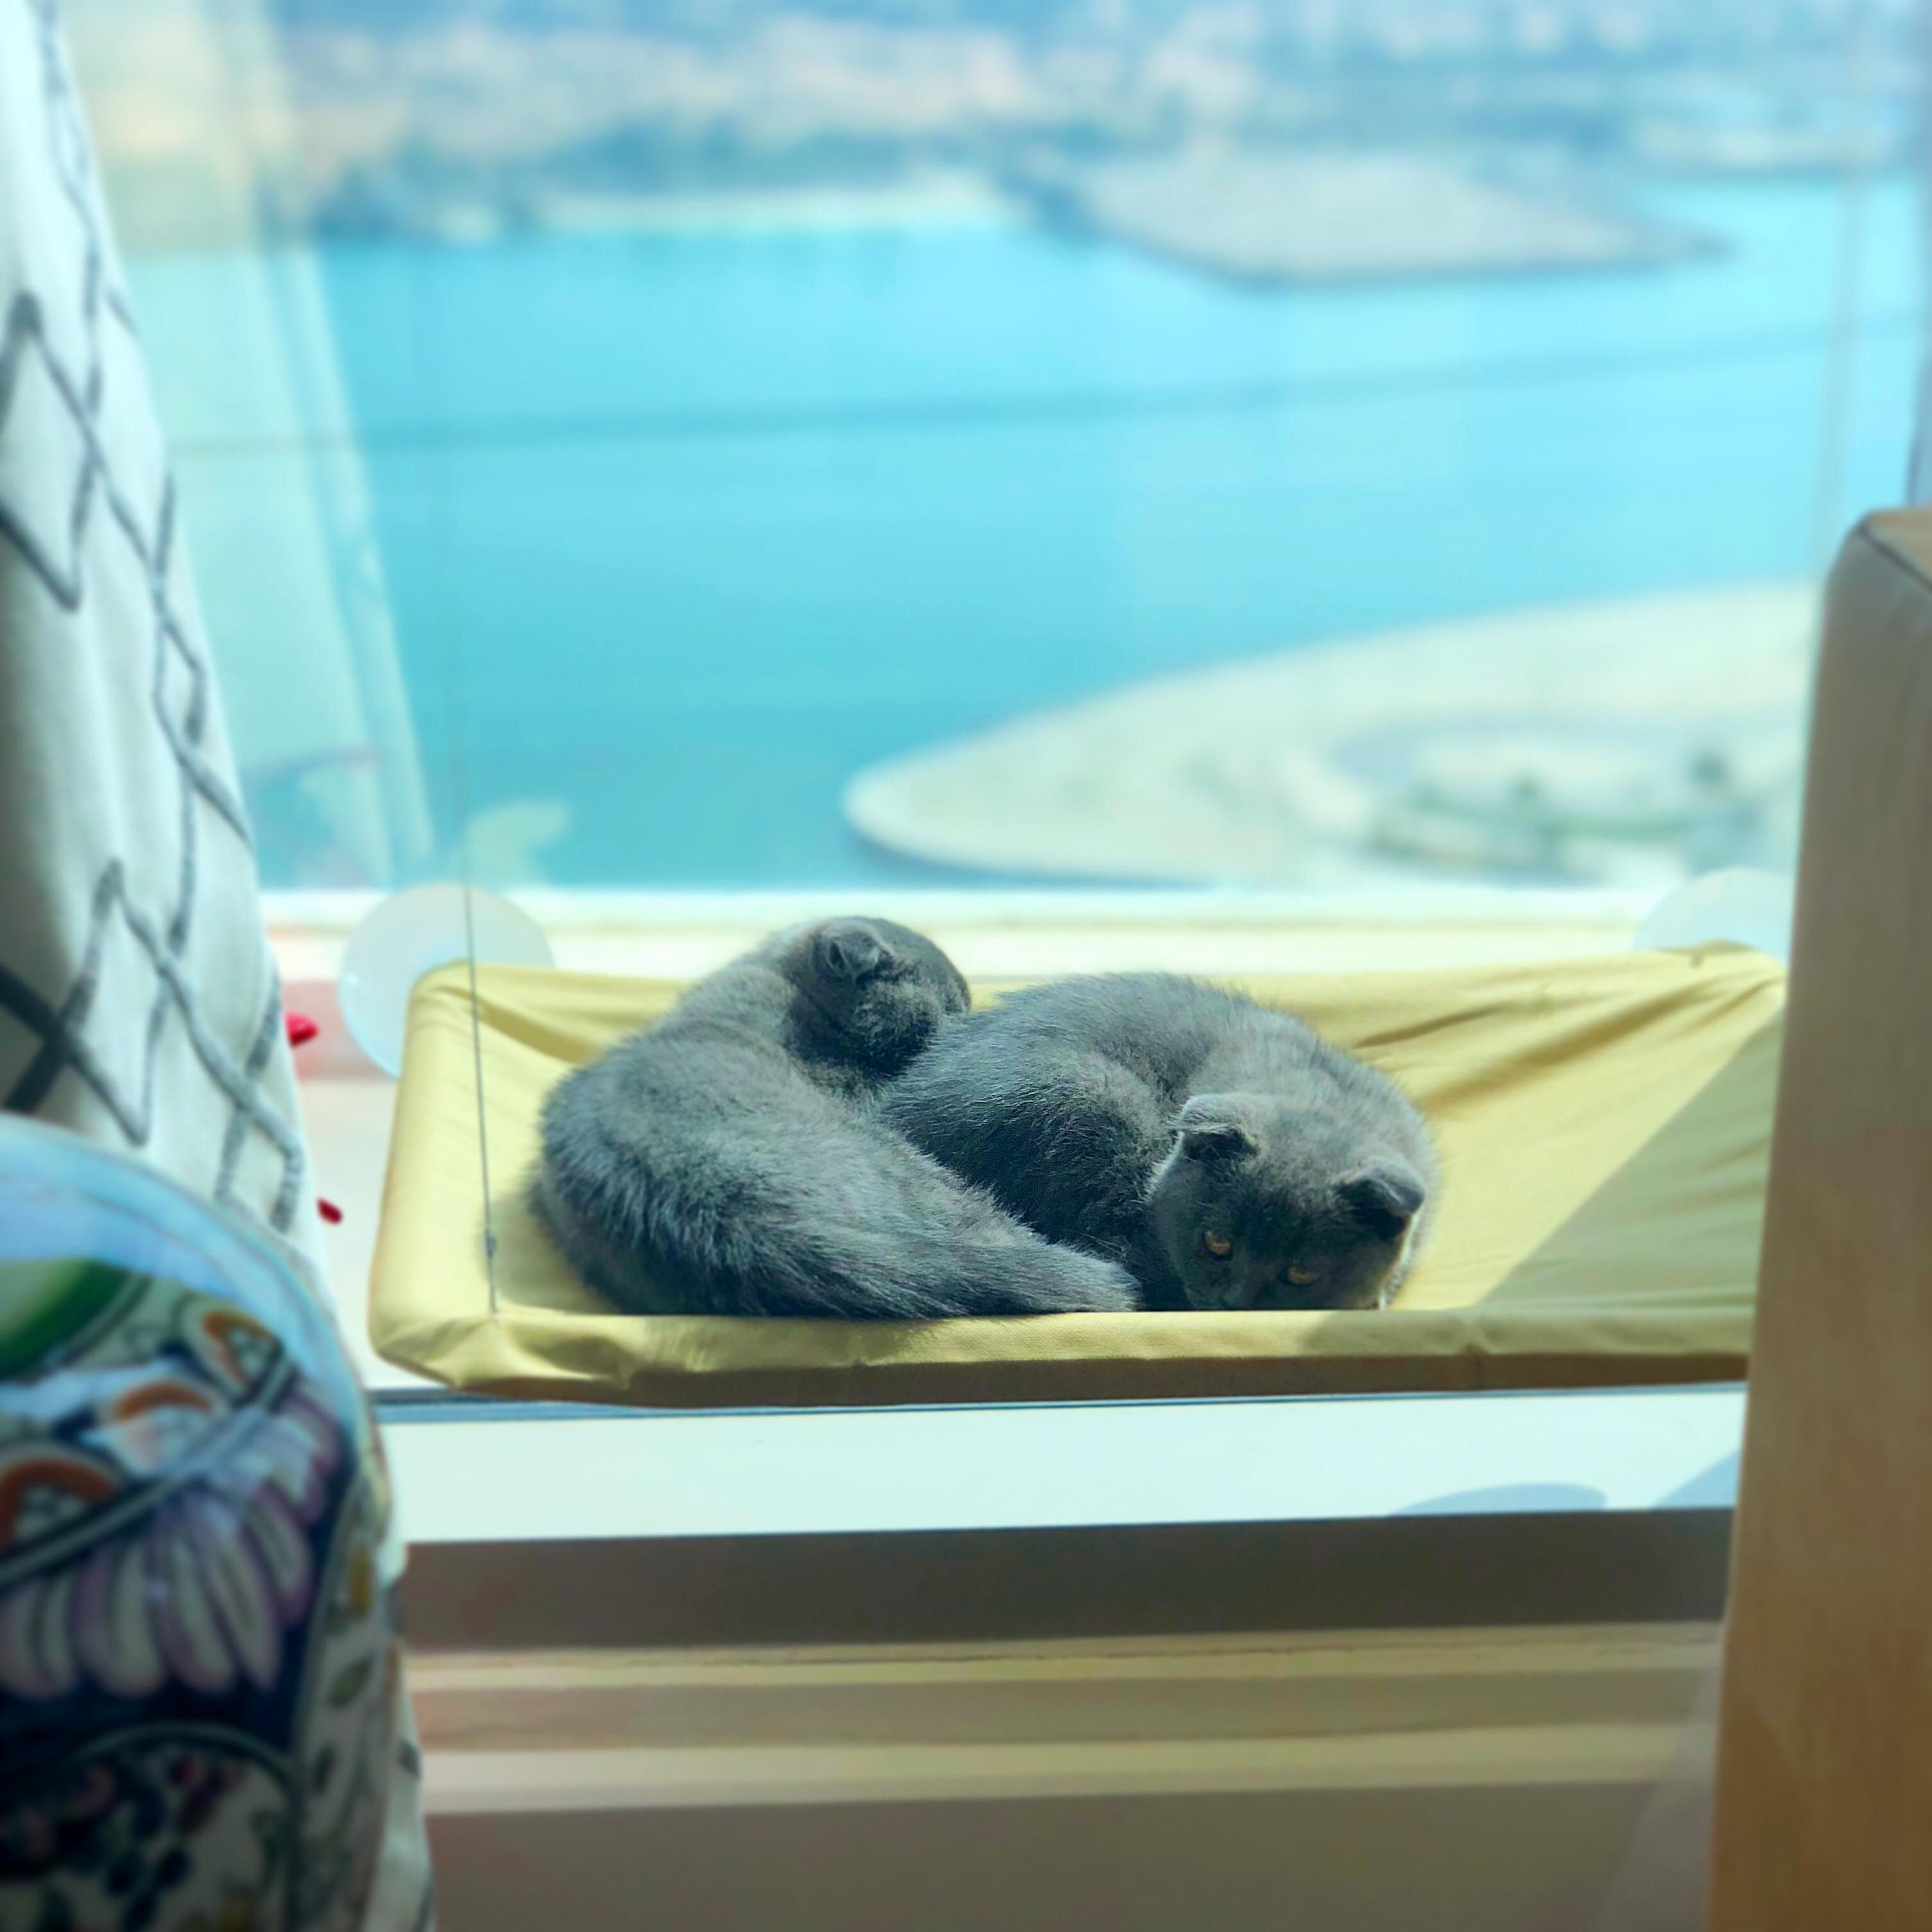 Our scottish fold babies enjoying the view and sun from their window perch